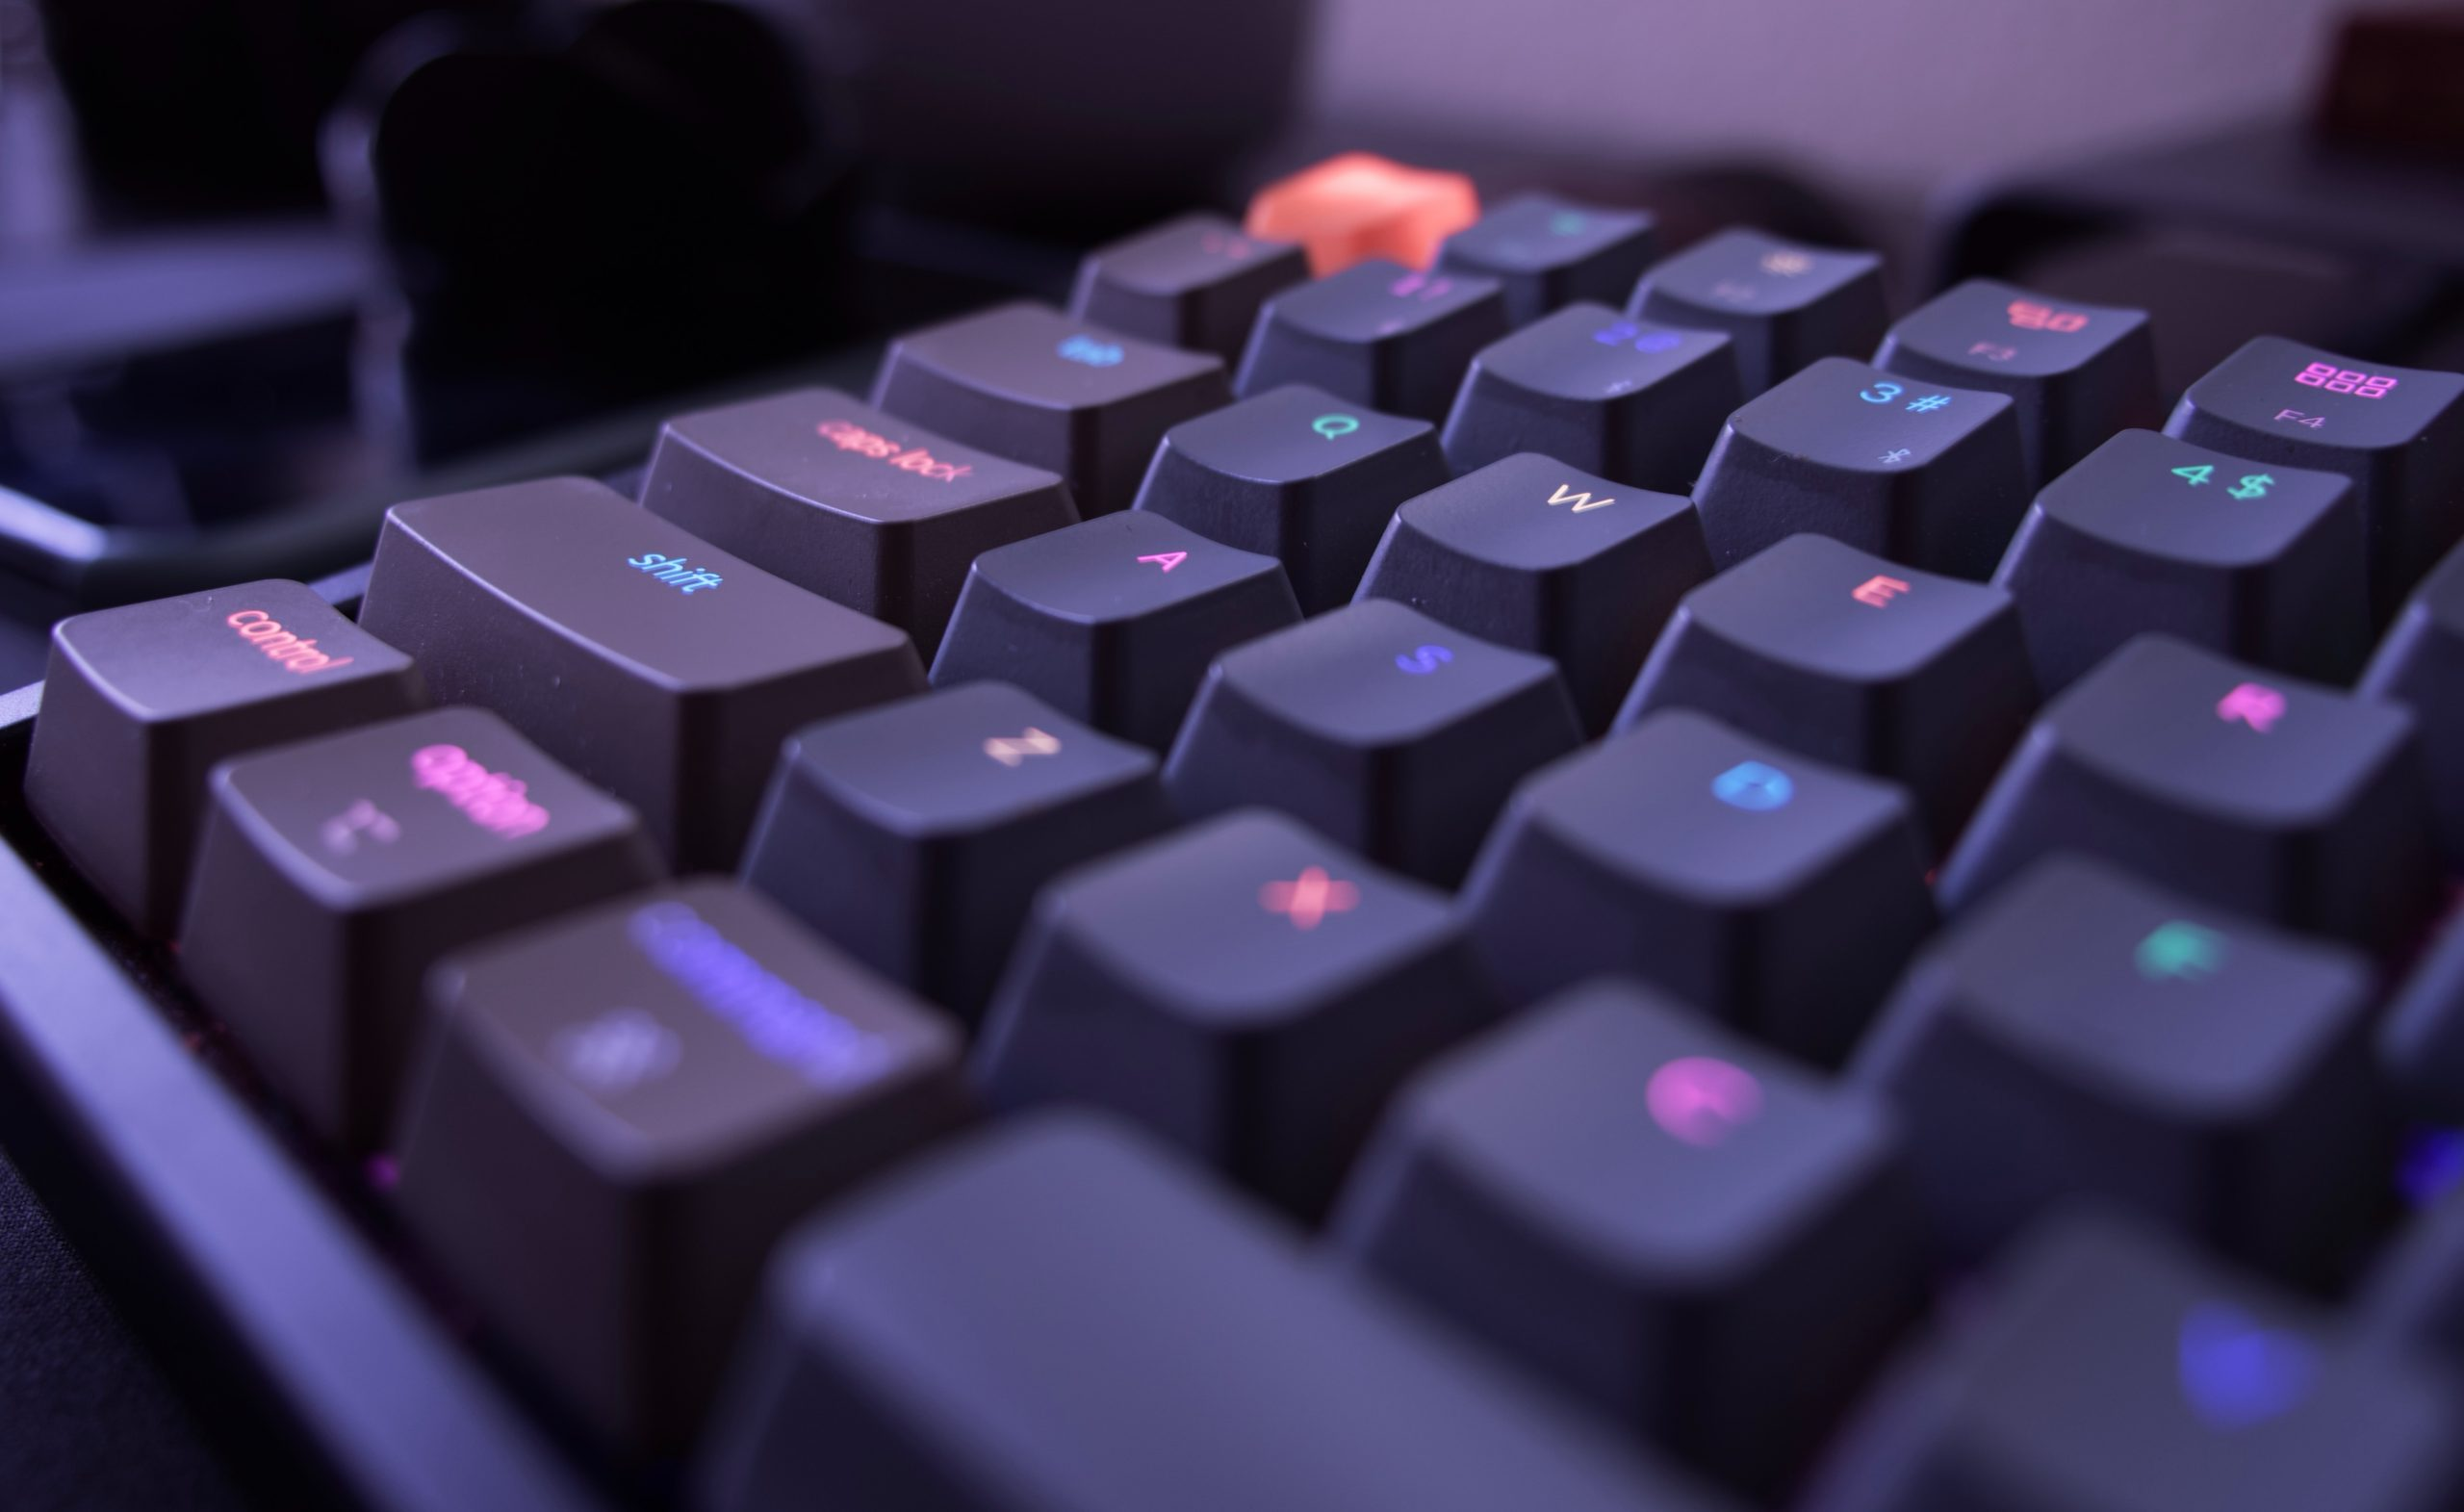 5 Quiet Keyboards For Gaming